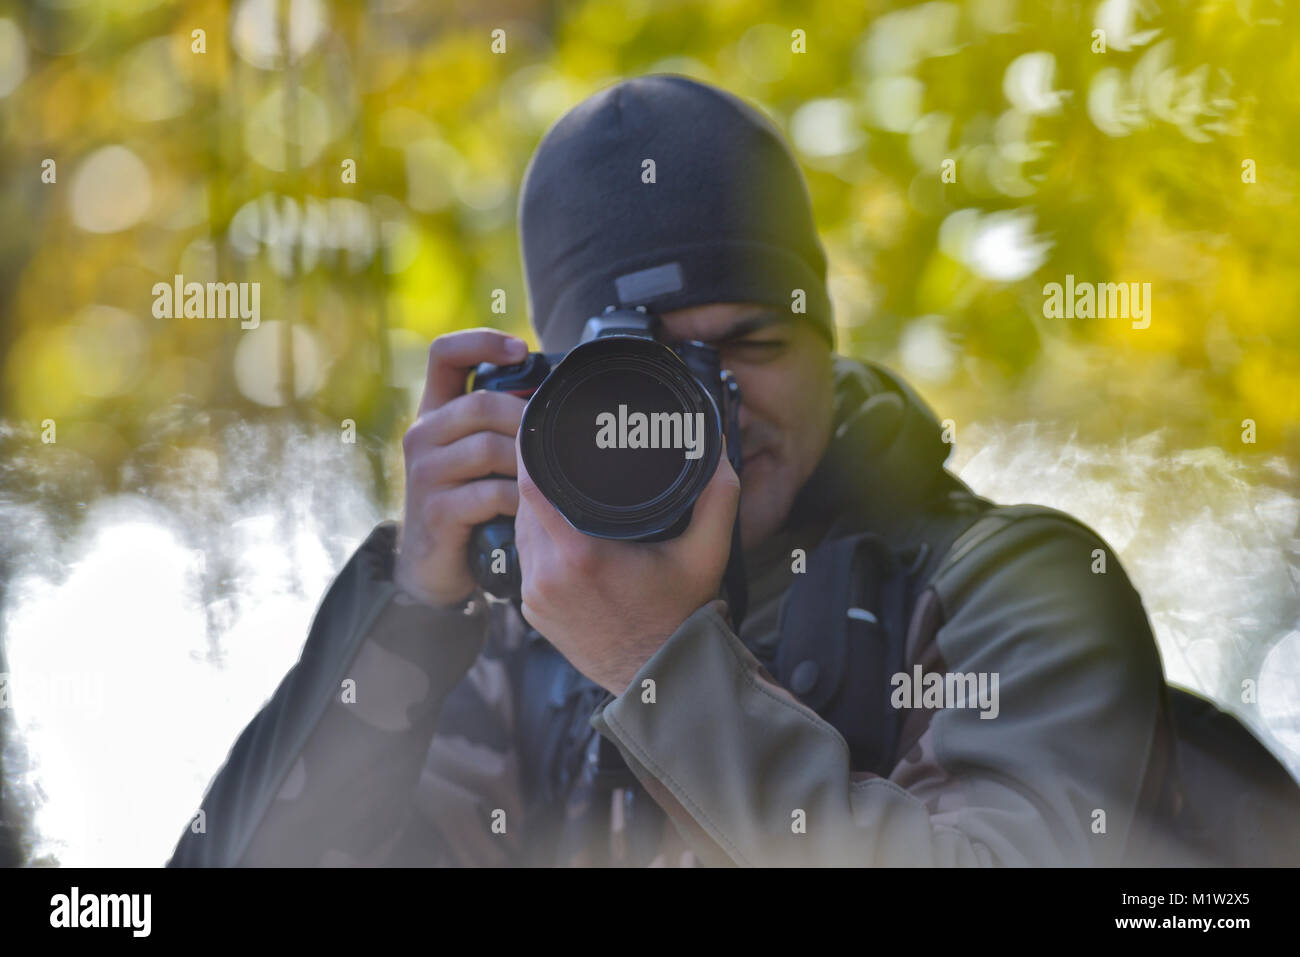 Wildlife, nature man photographer in camouflage outfit shooting, taking pictures - Stock Image